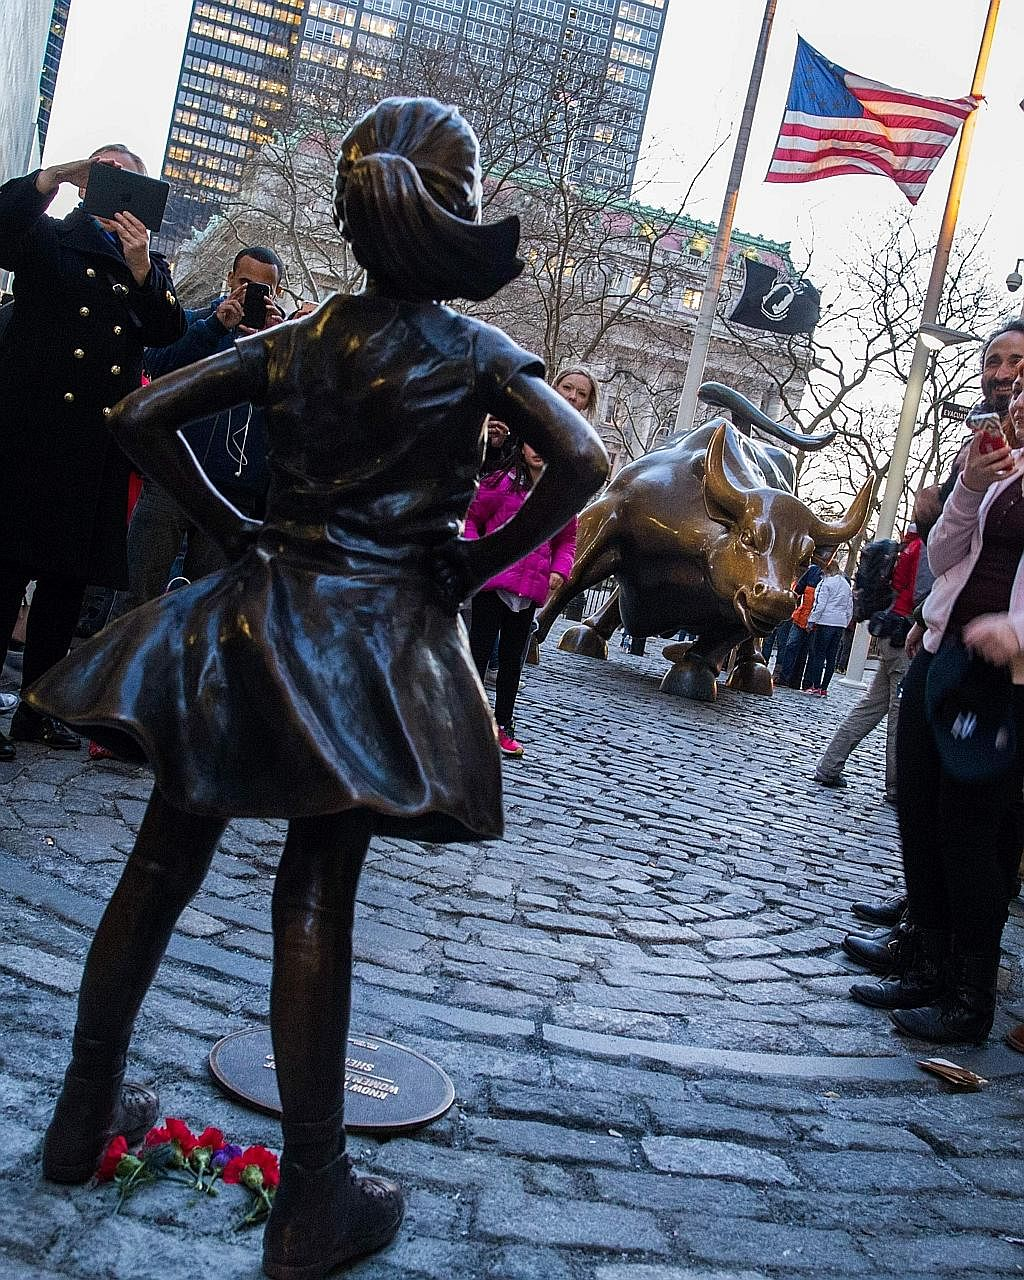 Fearless Girl, created by sculptor Kirsten Visbal, was placed at Bowling Green in honour of International Women's Day this month. She has spent the last few weeks in a face-off with Wall Street's well-known Charging Bull, and will do so until March 8